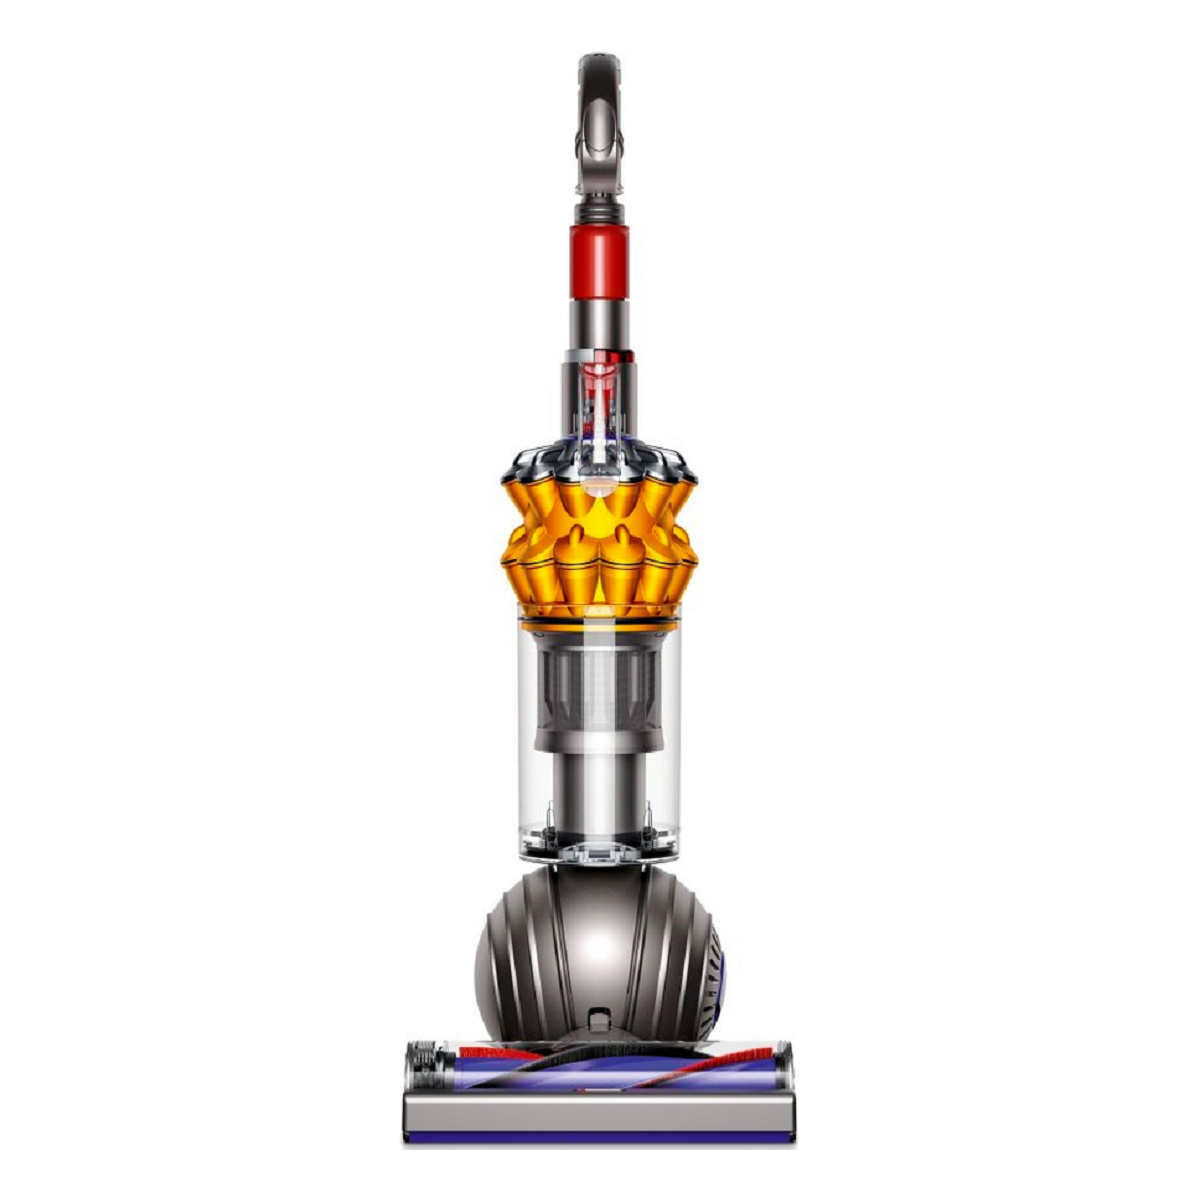 Dyson 213551-01 Small Ball Upright Vacuum Cleaner